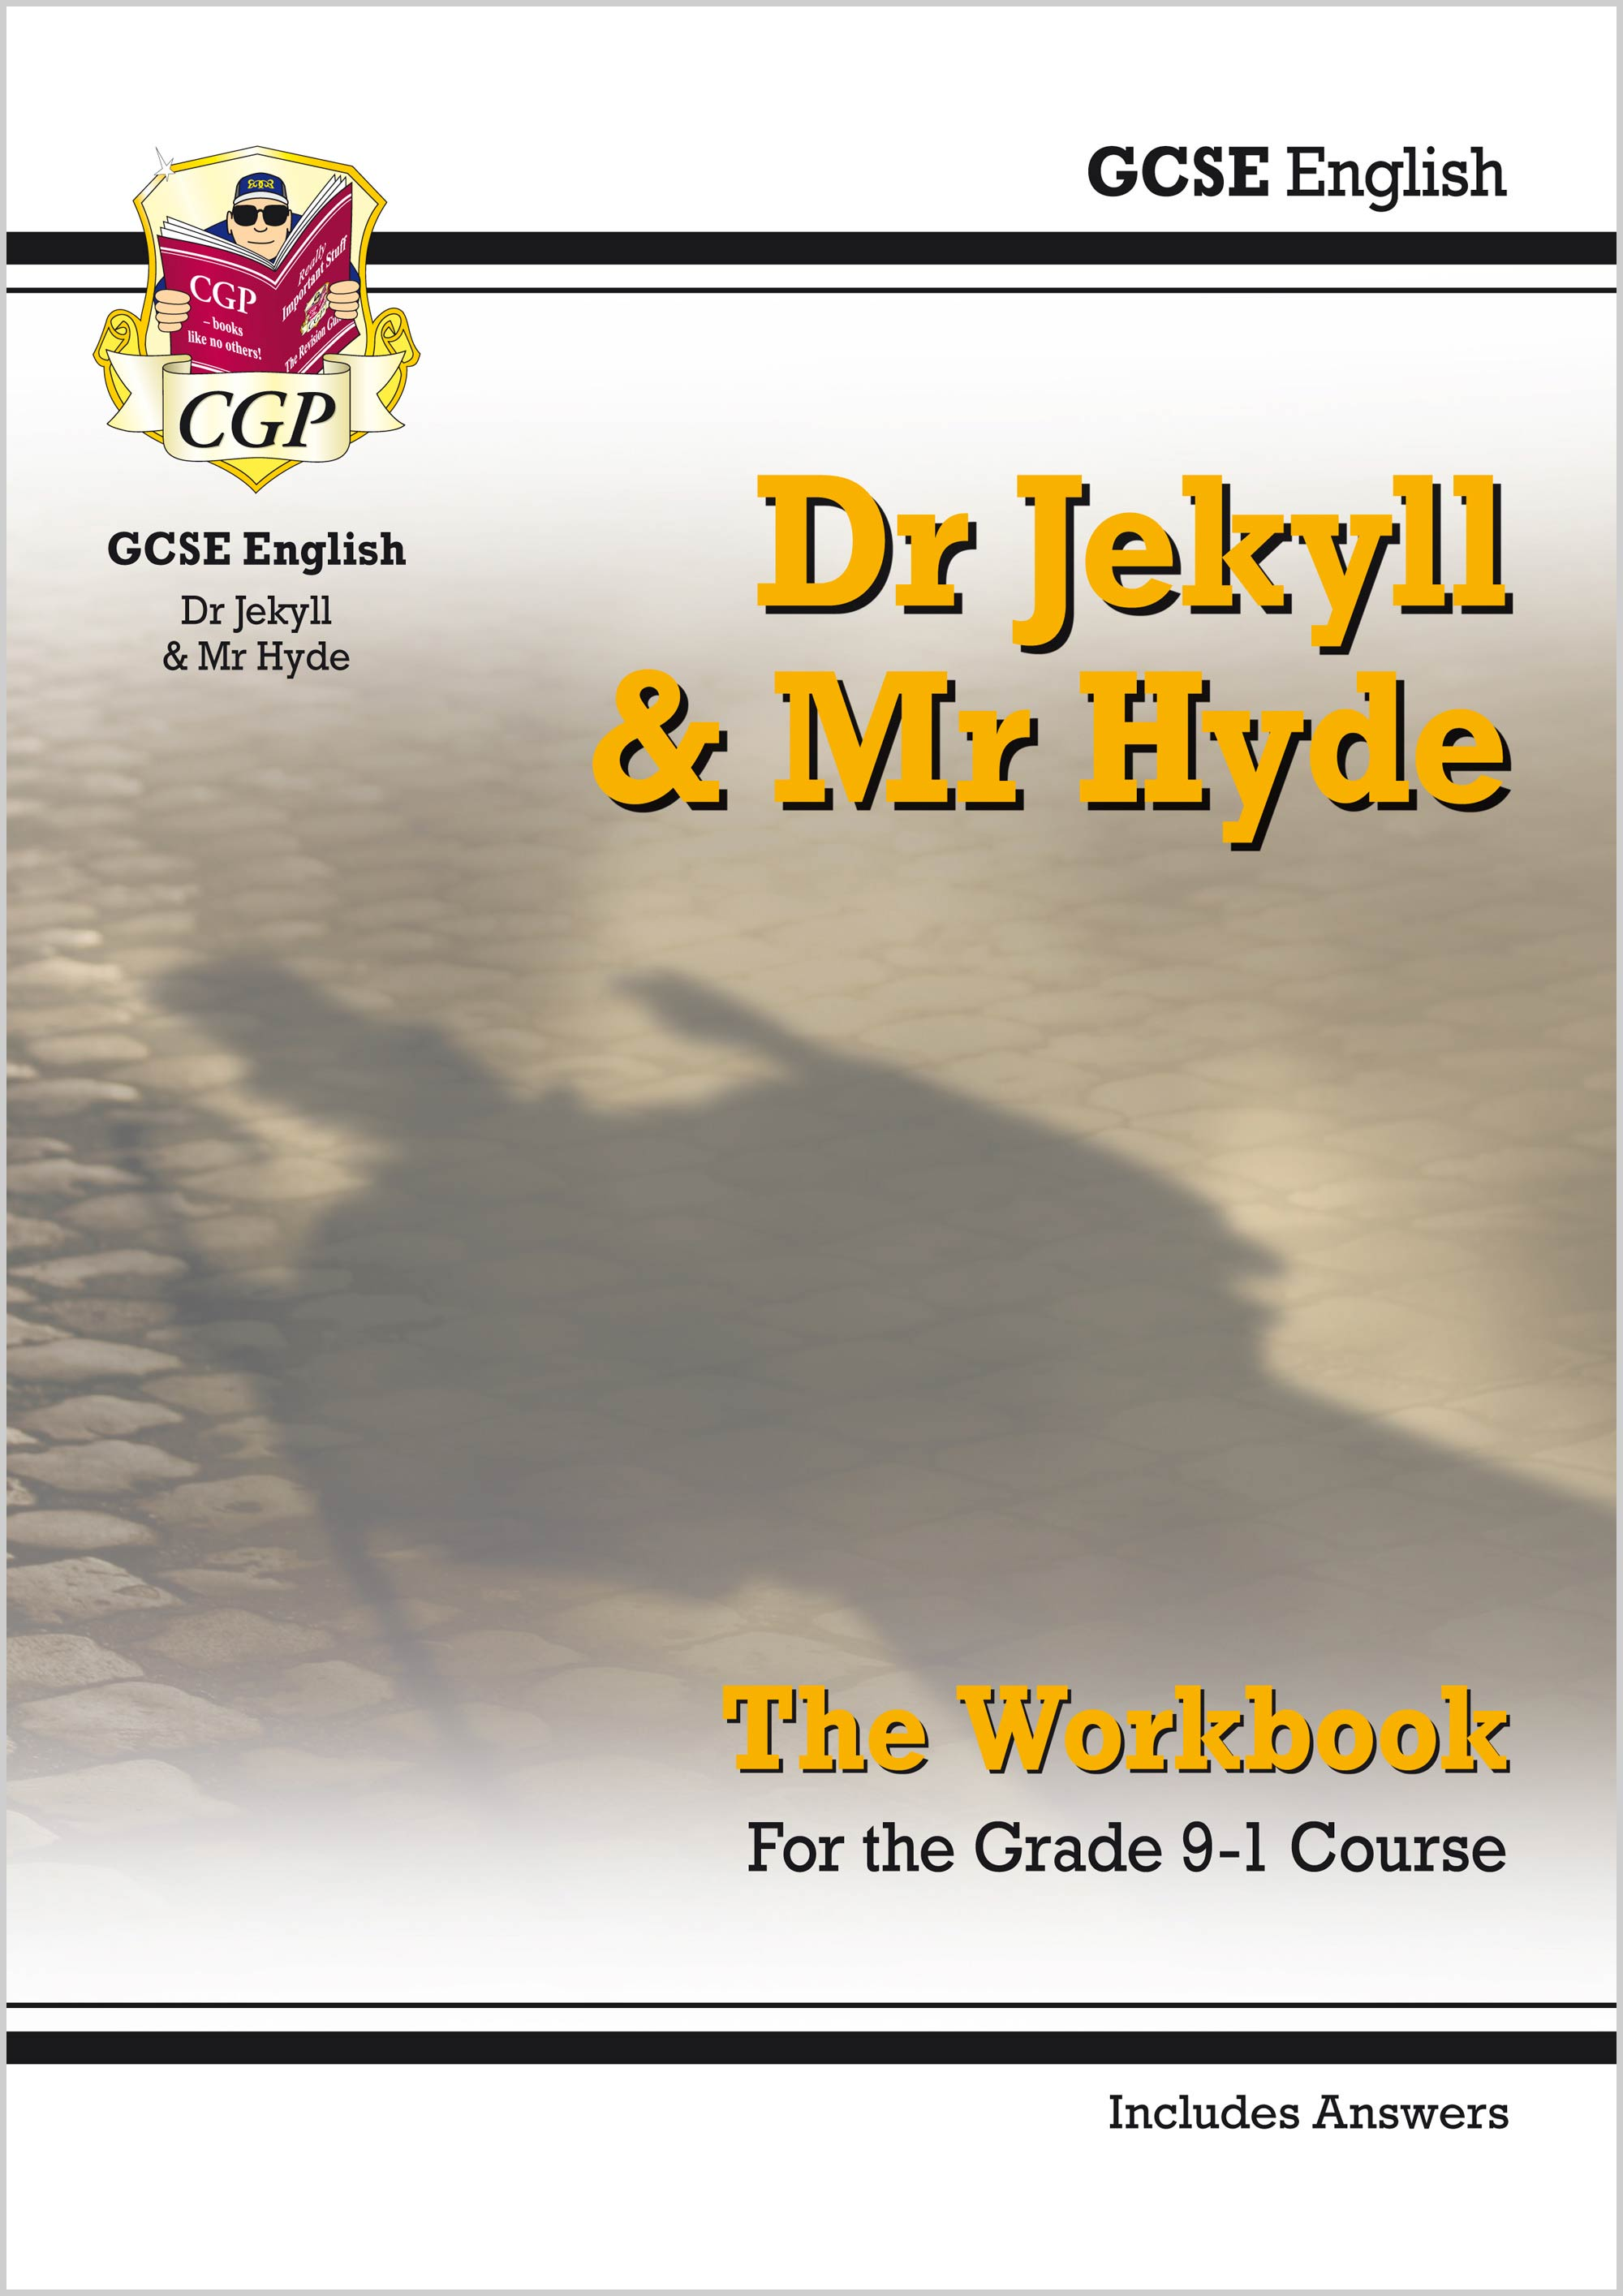 ETWJH41 - New Grade 9-1 GCSE English - Dr Jekyll and Mr Hyde Workbook (includes Answers)